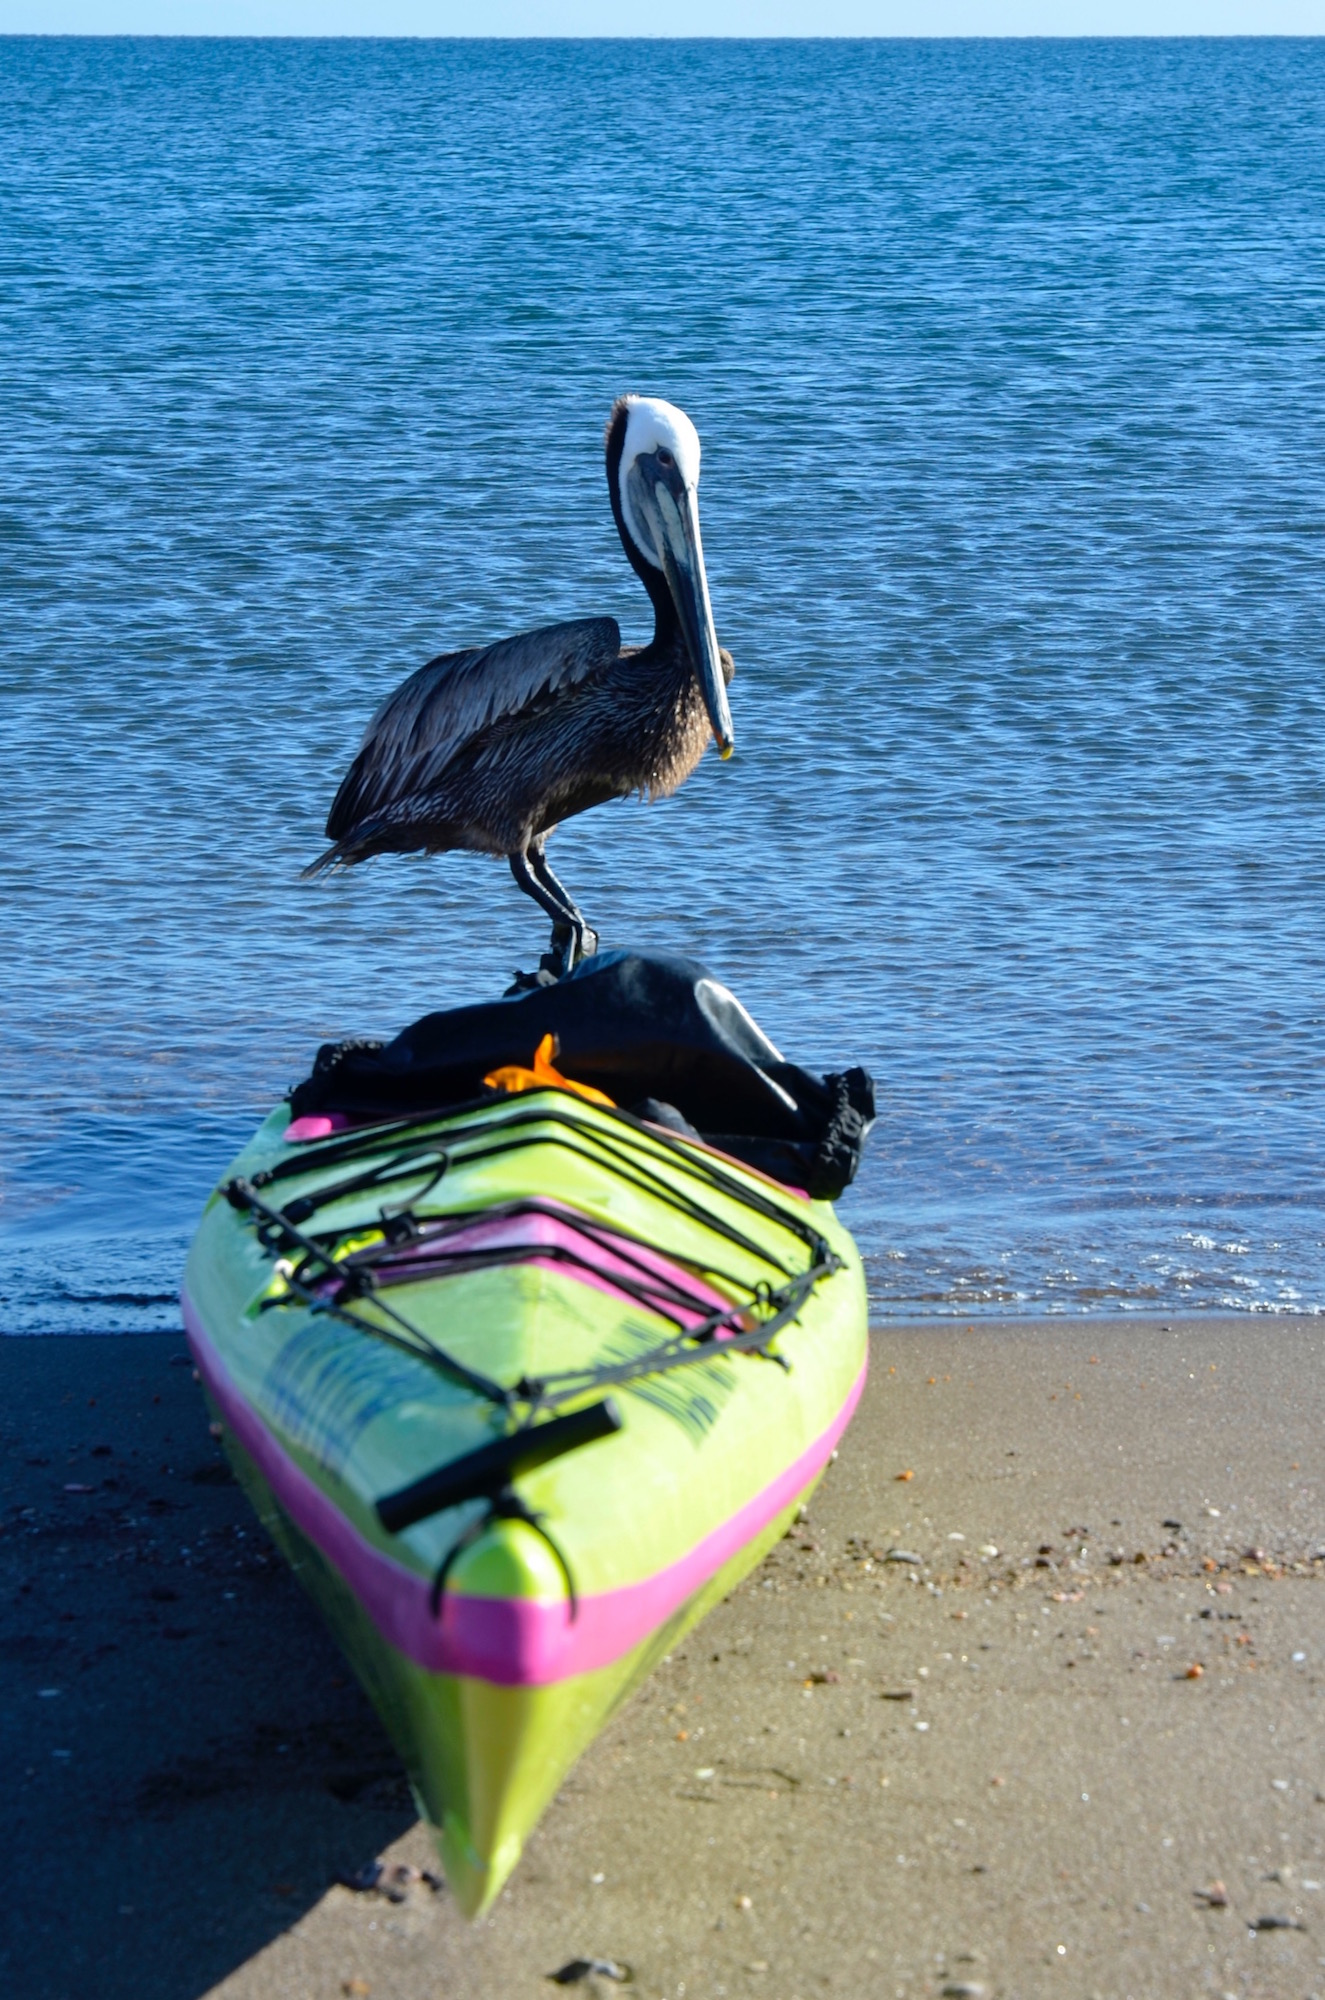 Pelican perched on top of a sea kayak